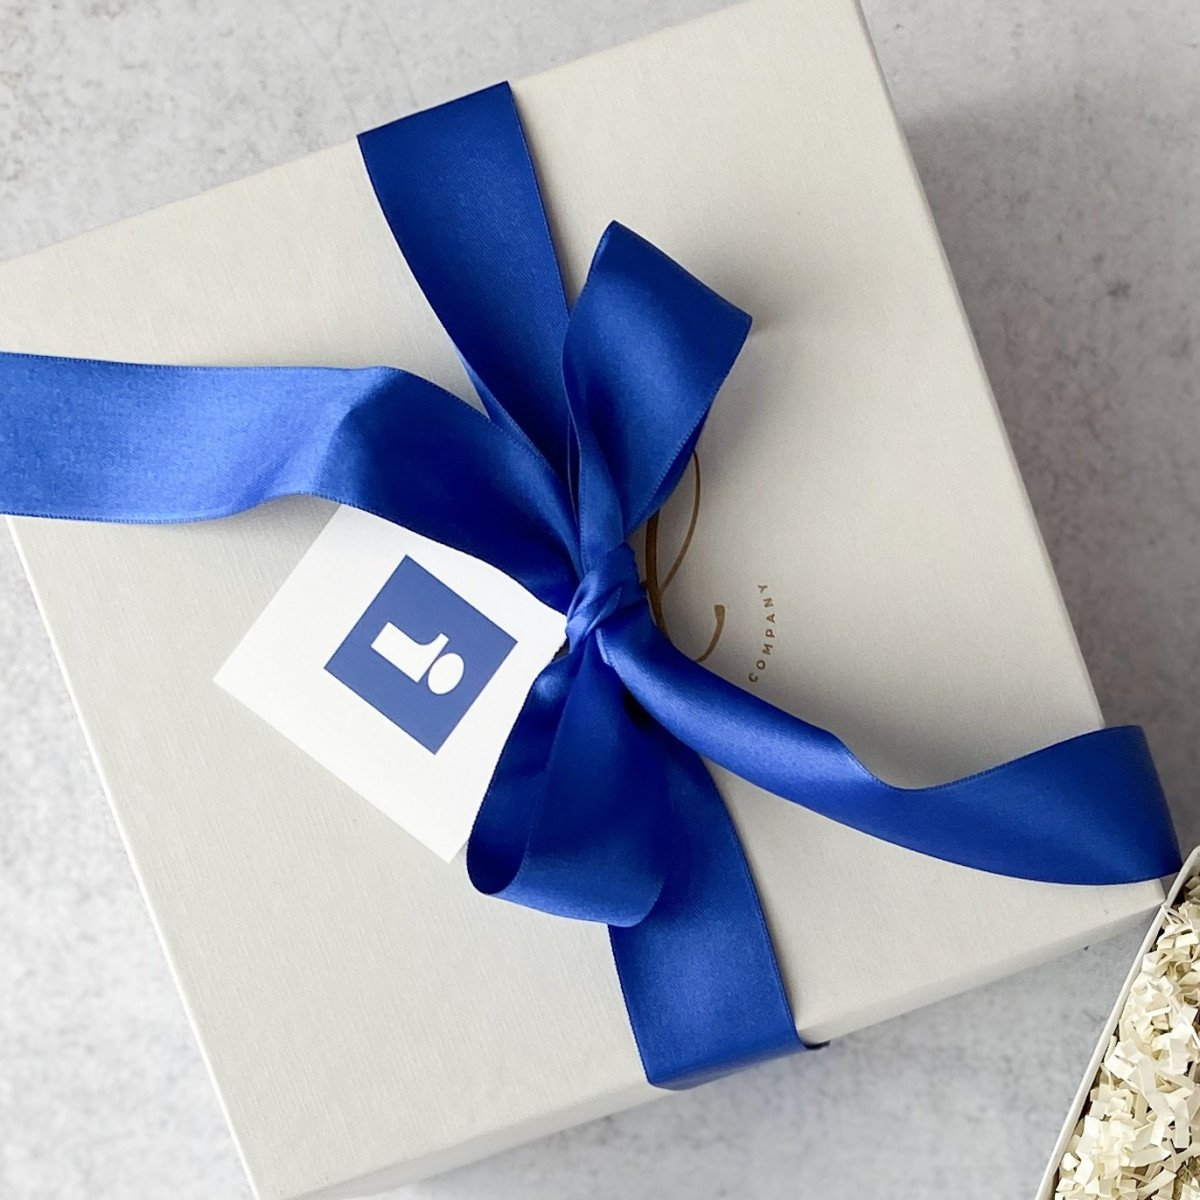 With our wide selection of custom branding options, we can elevate any store or corporate catalog gift to a custom packaged, on-brand gift box!